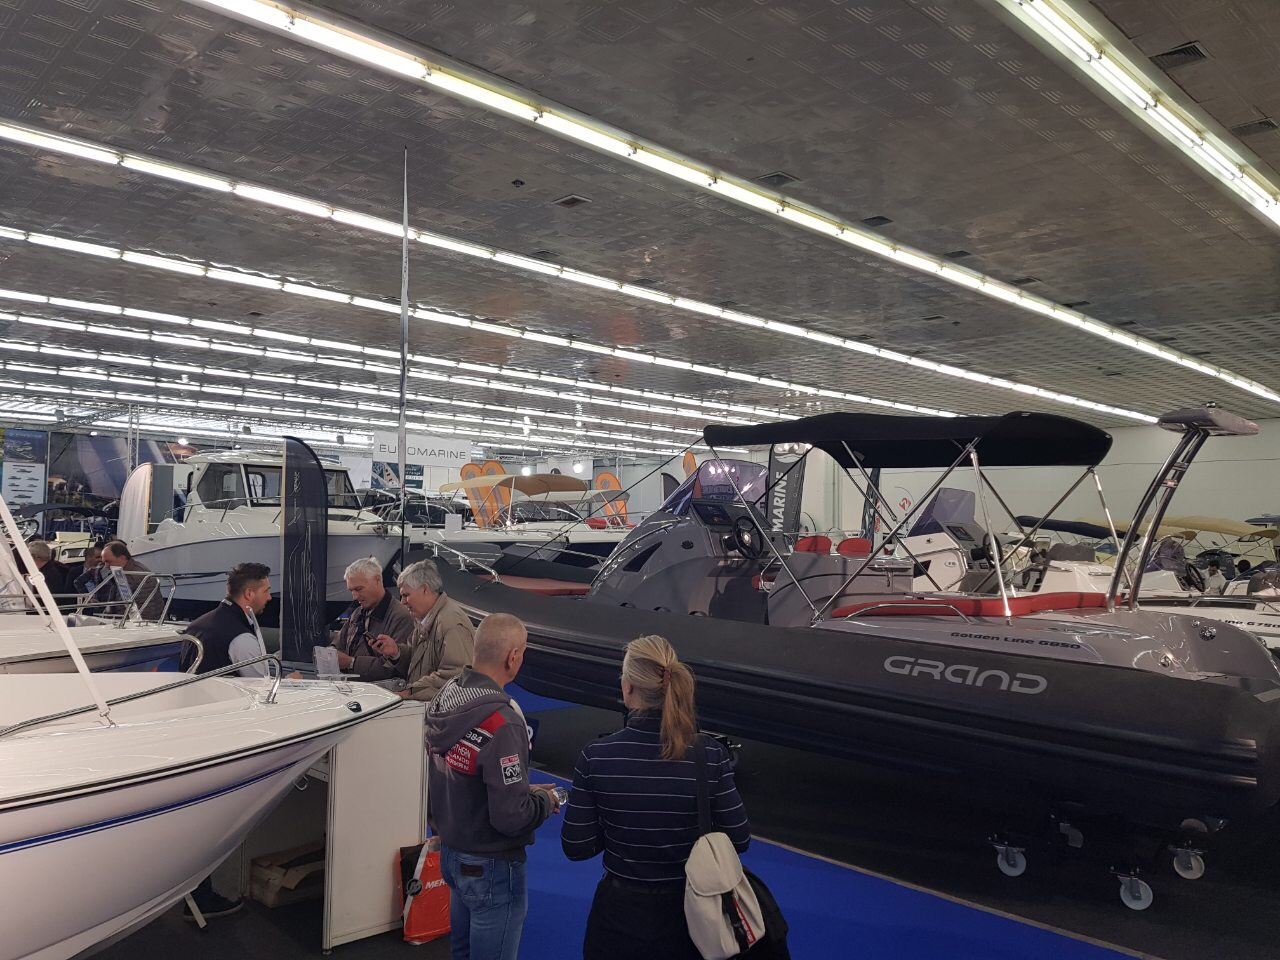 PYI boat and marine insurance Zagreb boat show 2019